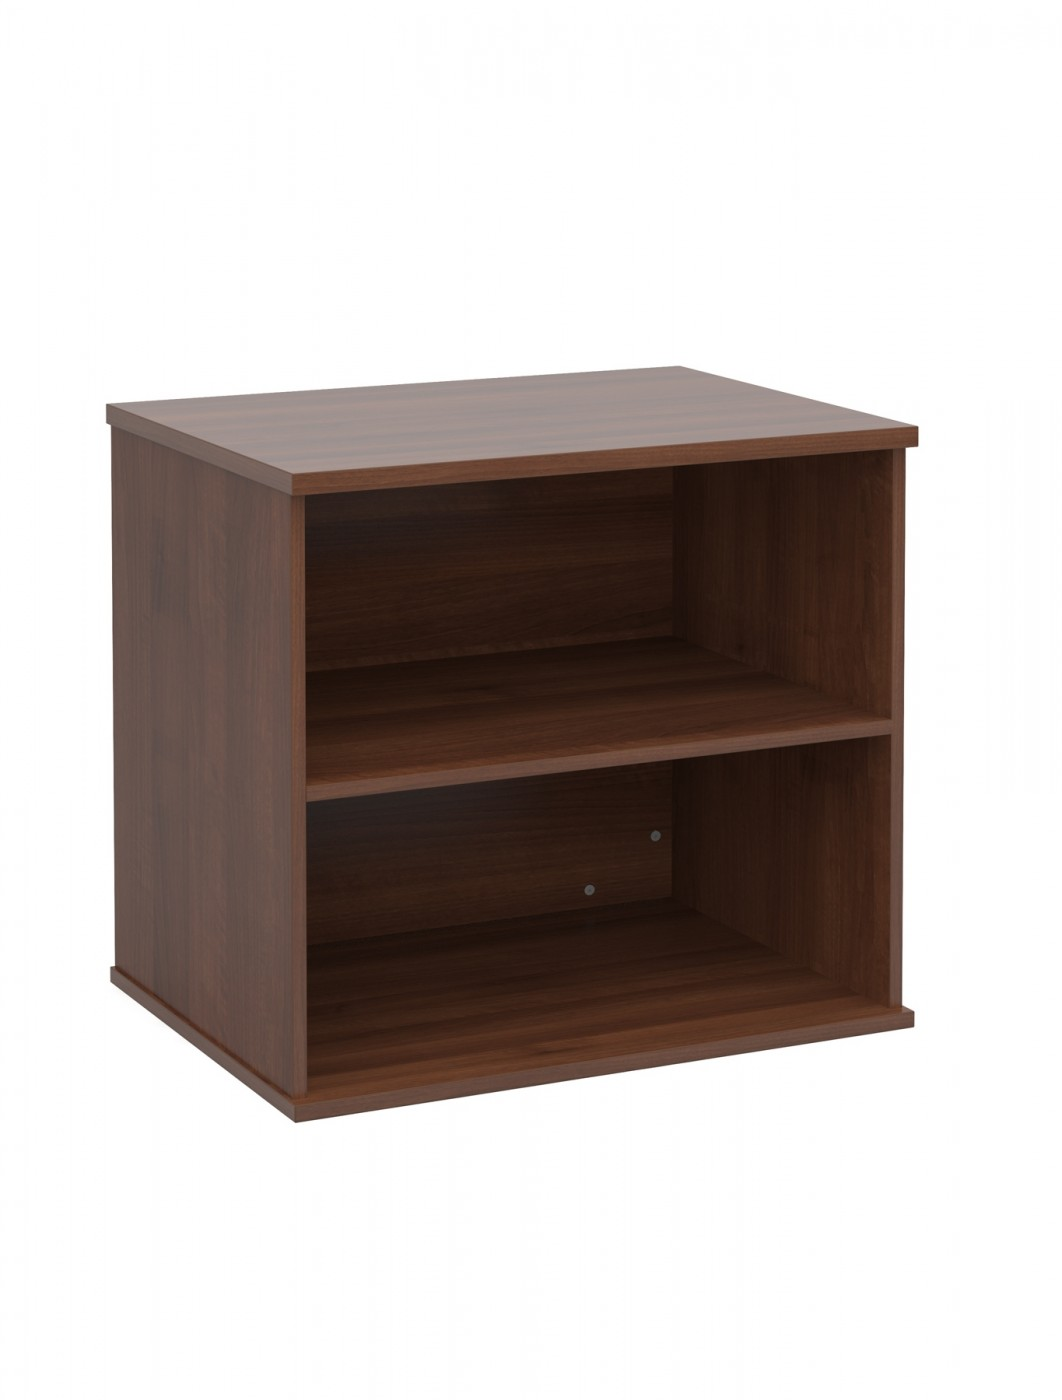 Dams Deluxe Desk High Bookcase DHBC